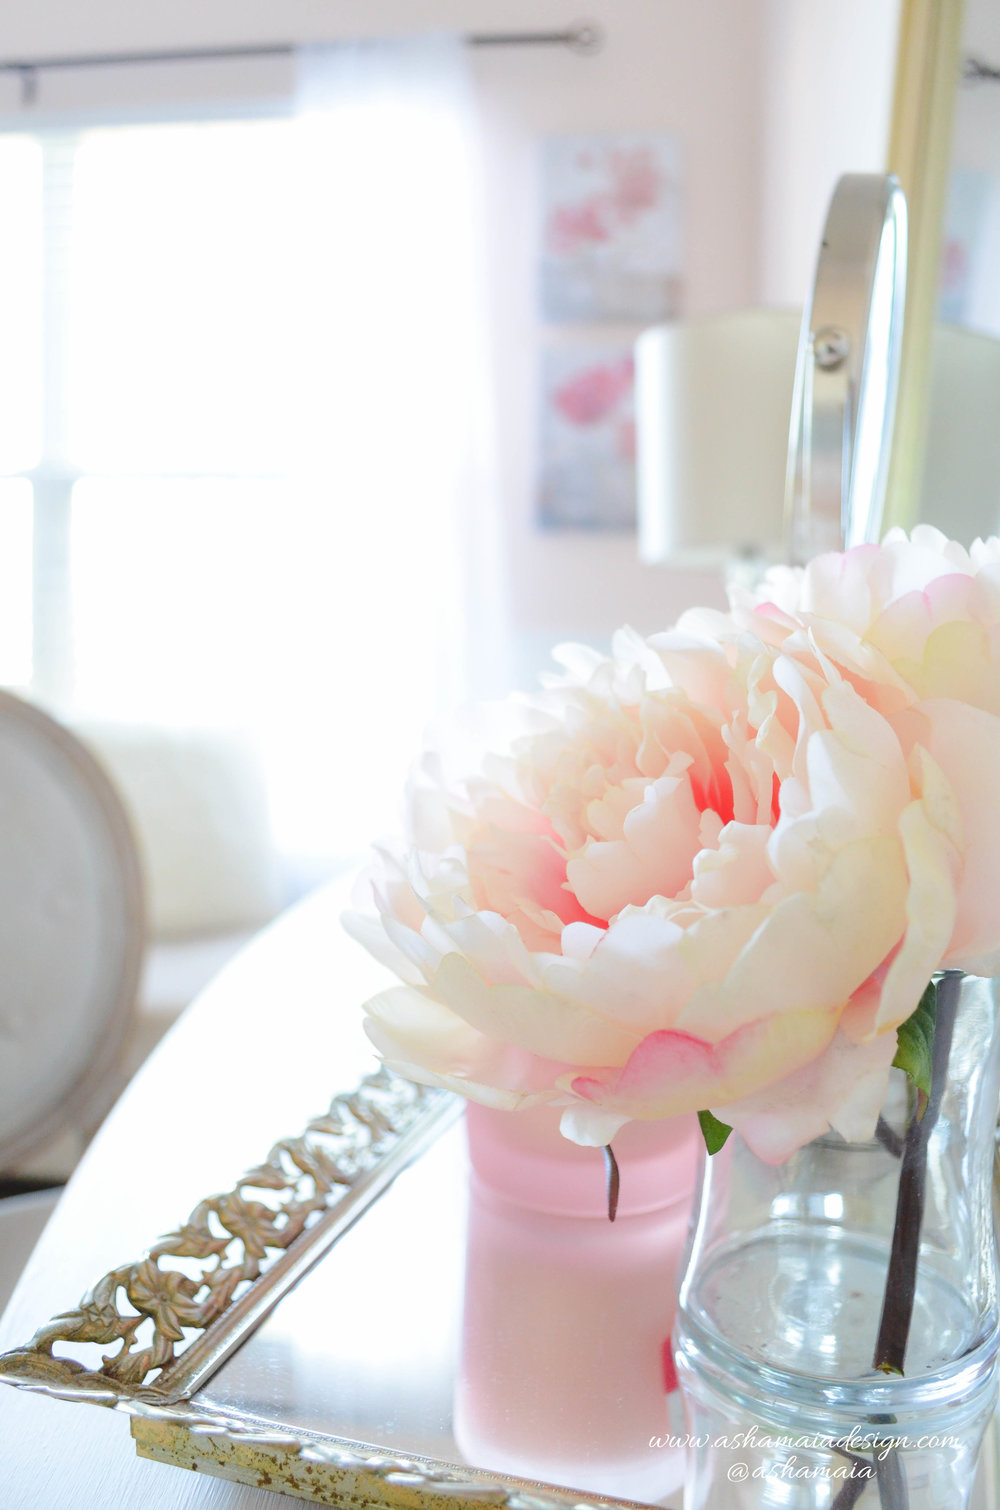 Intimate White Parisian Style Elegant Beauty Room with White Wainscoting, White Traditional Makeup Vanity with Gilded Mirror and Peonies in Vase Close Up